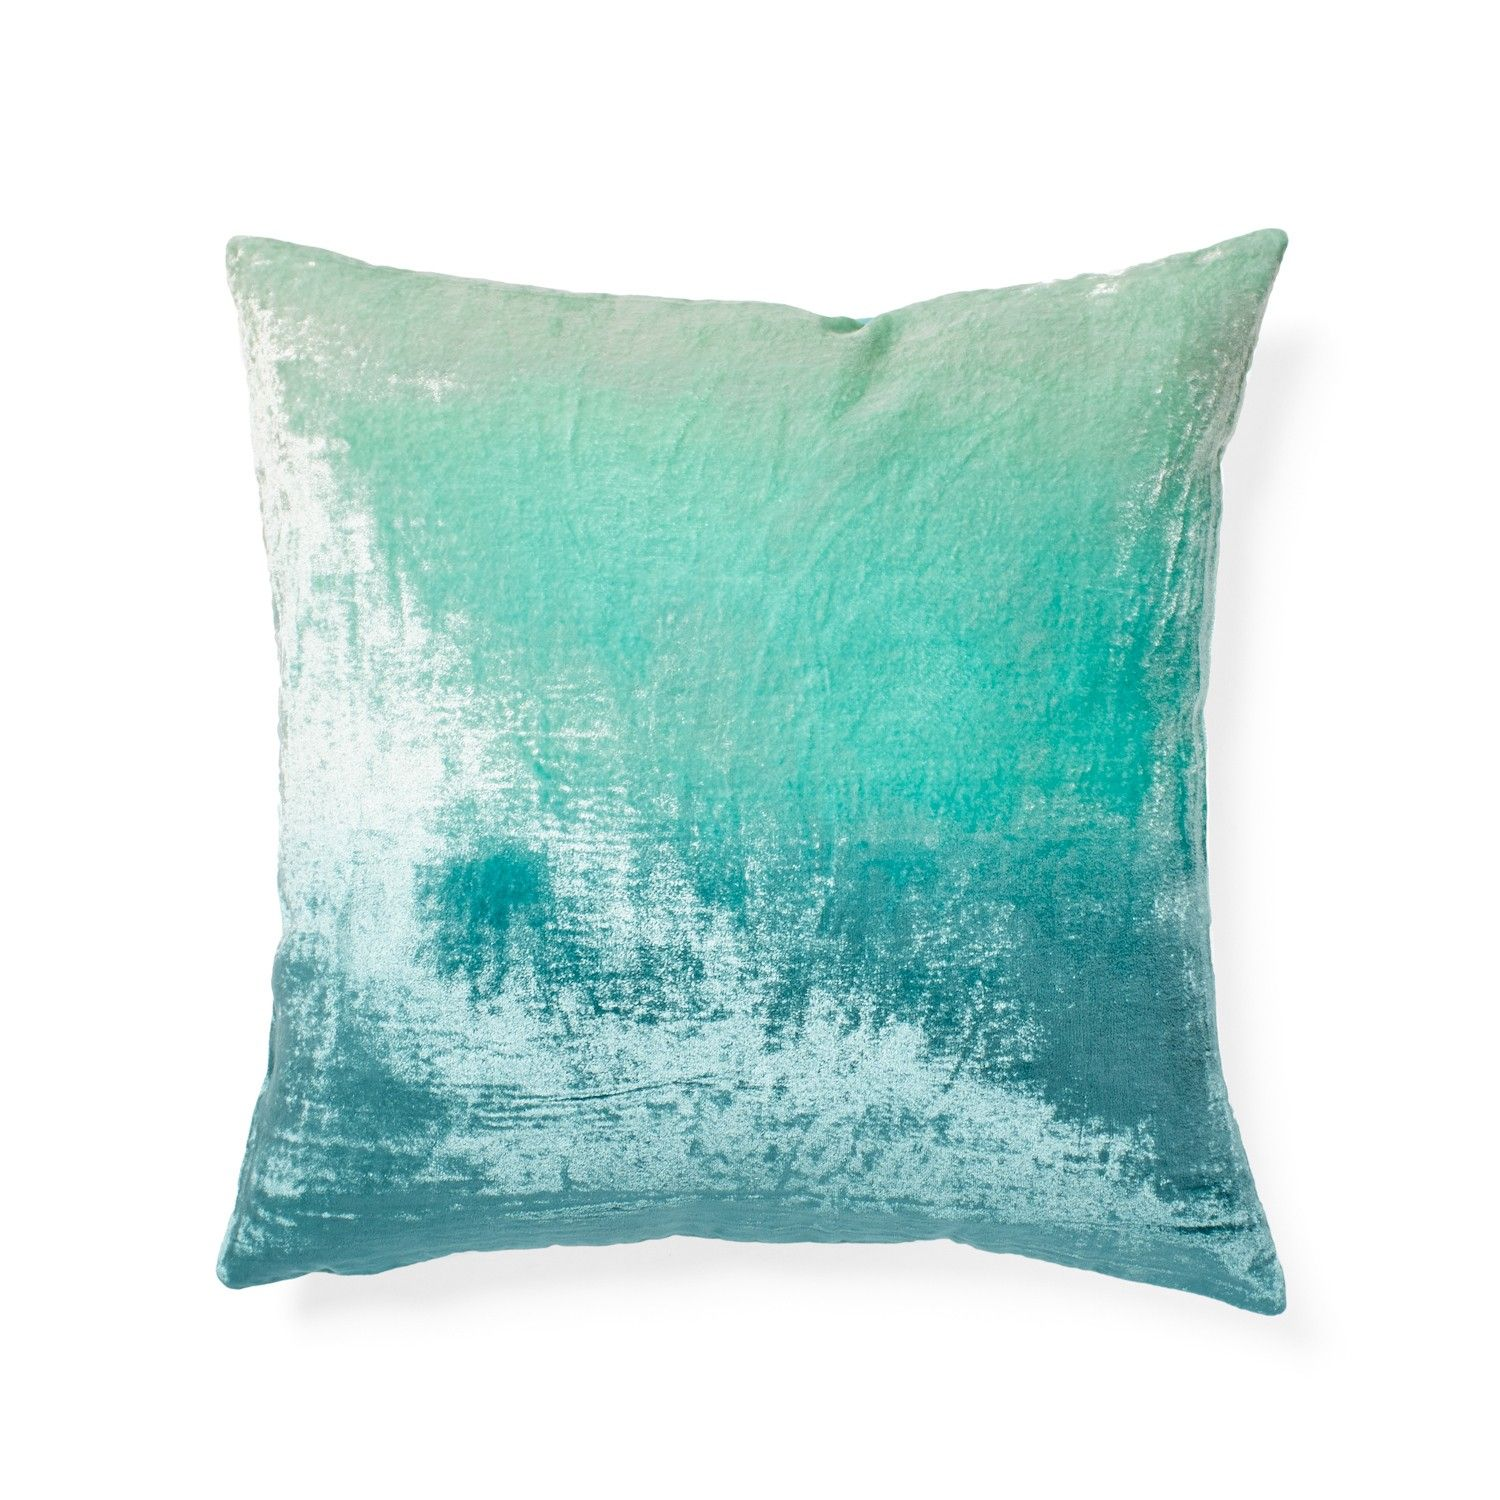 Turquoise Ombre Velvet Pillow at ABC  Interior Design